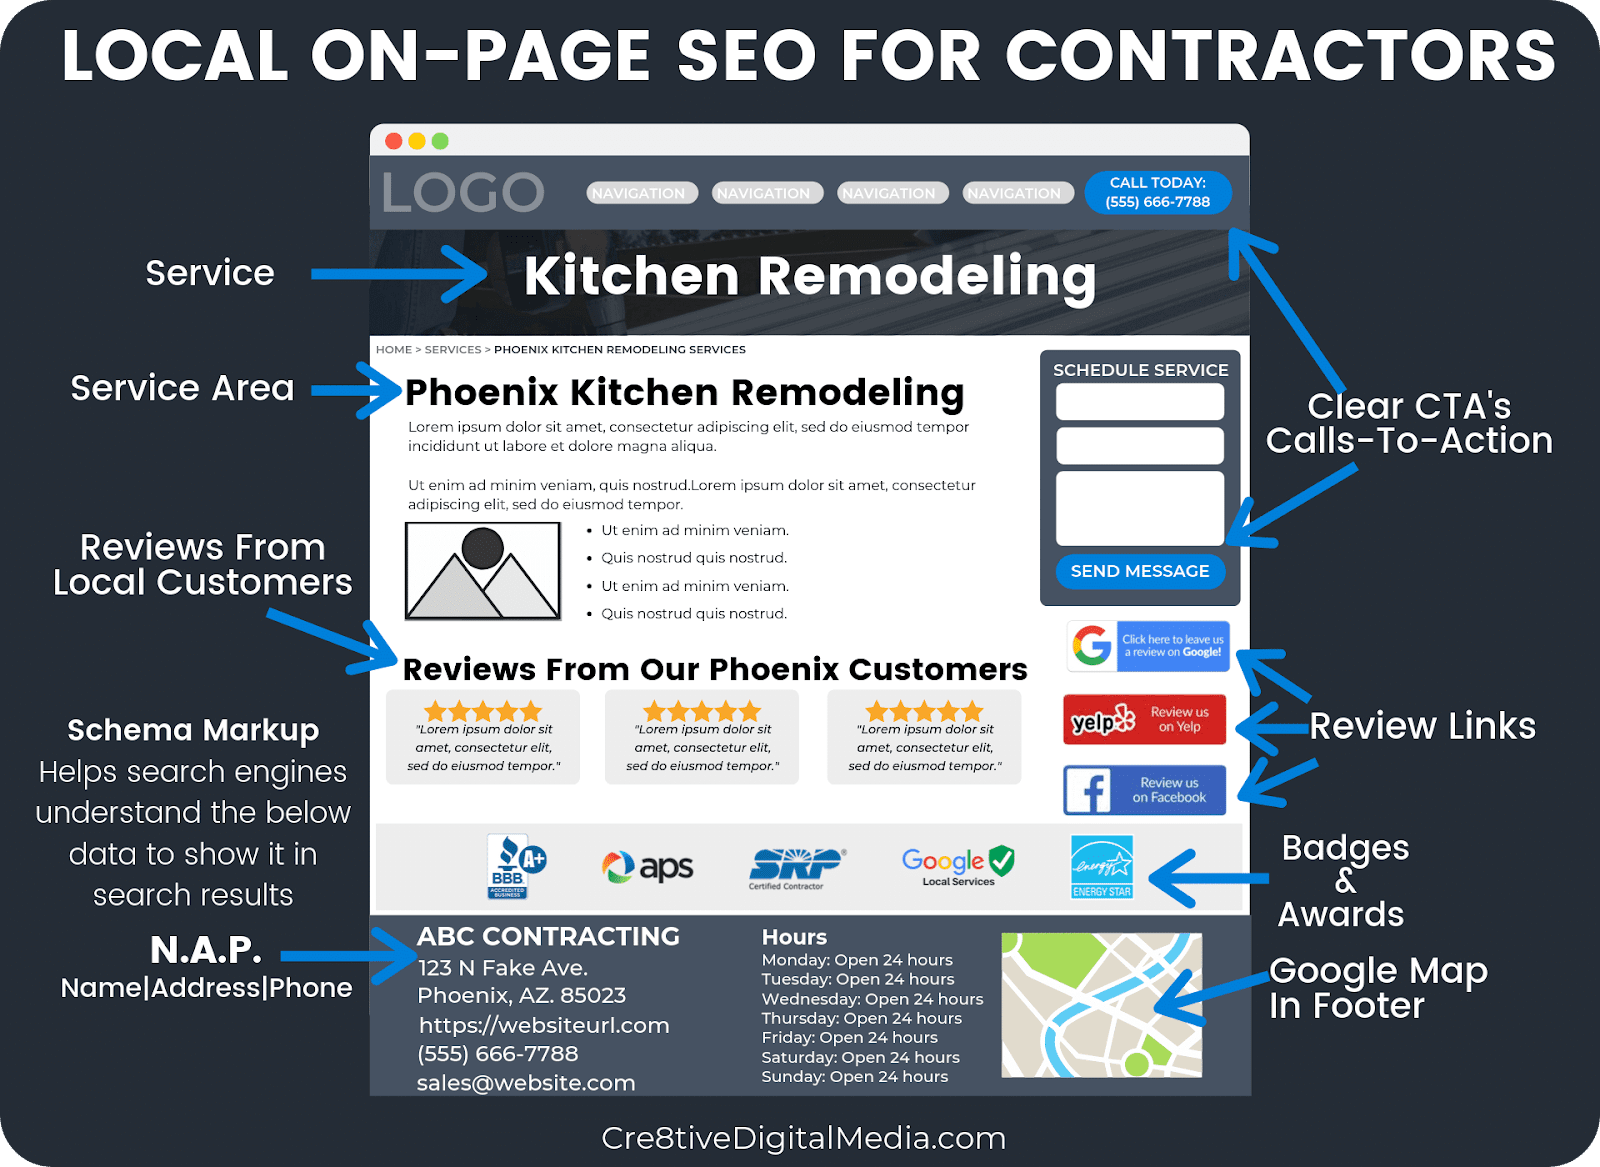 Local On-Page SEO Optimizations For Contractors